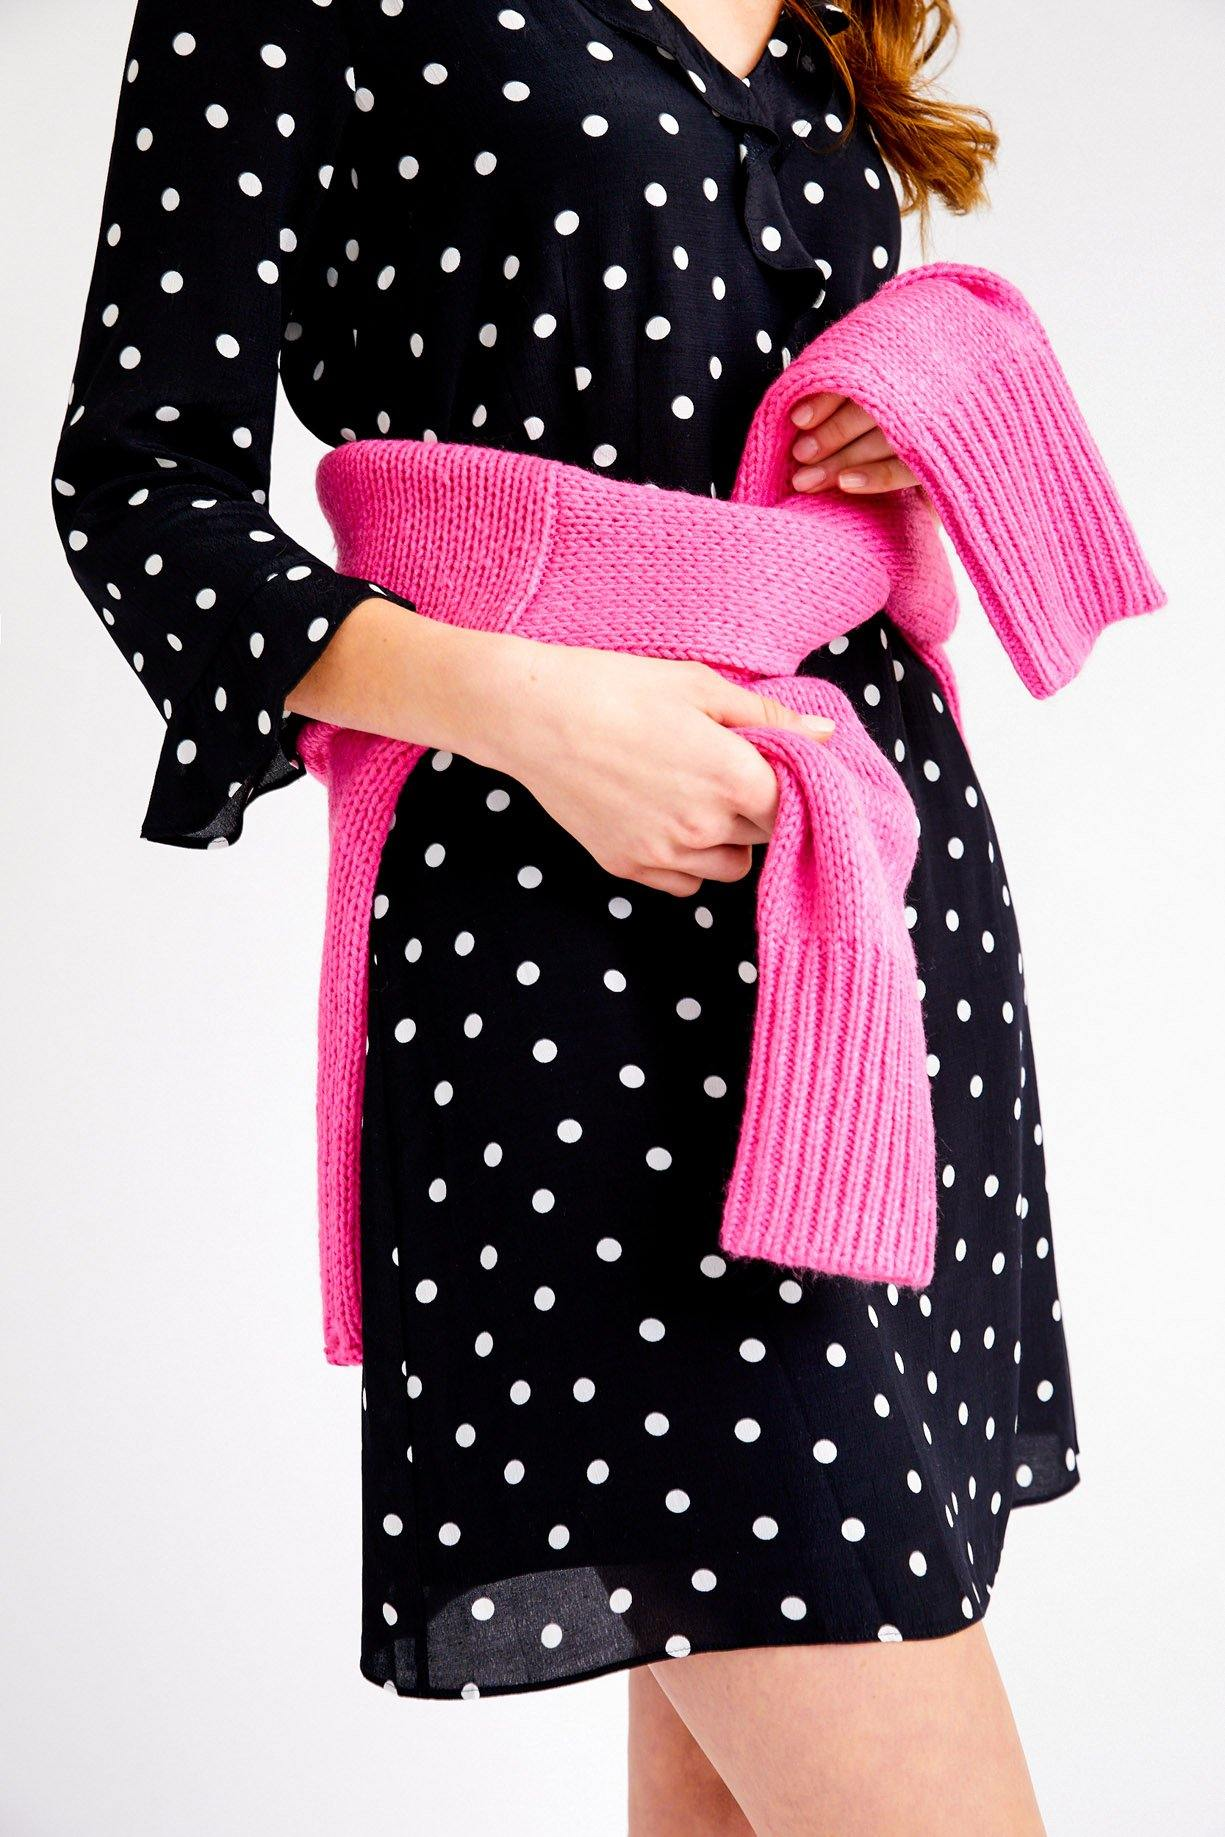 Sanctuary Polka Dot Dress